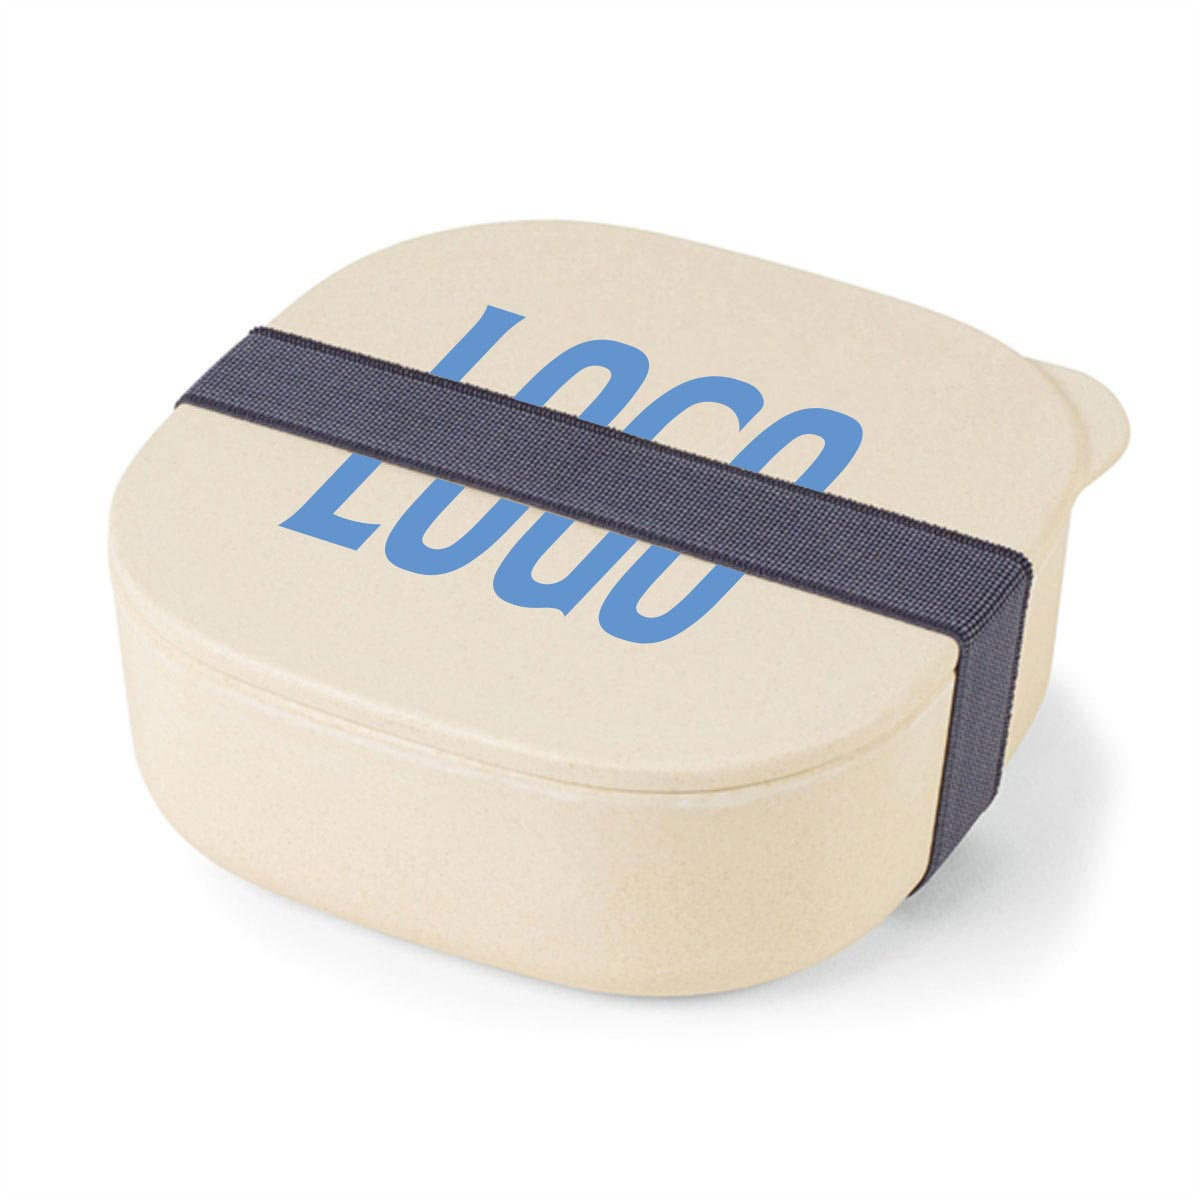 236103 andes bento box one color one location imprint